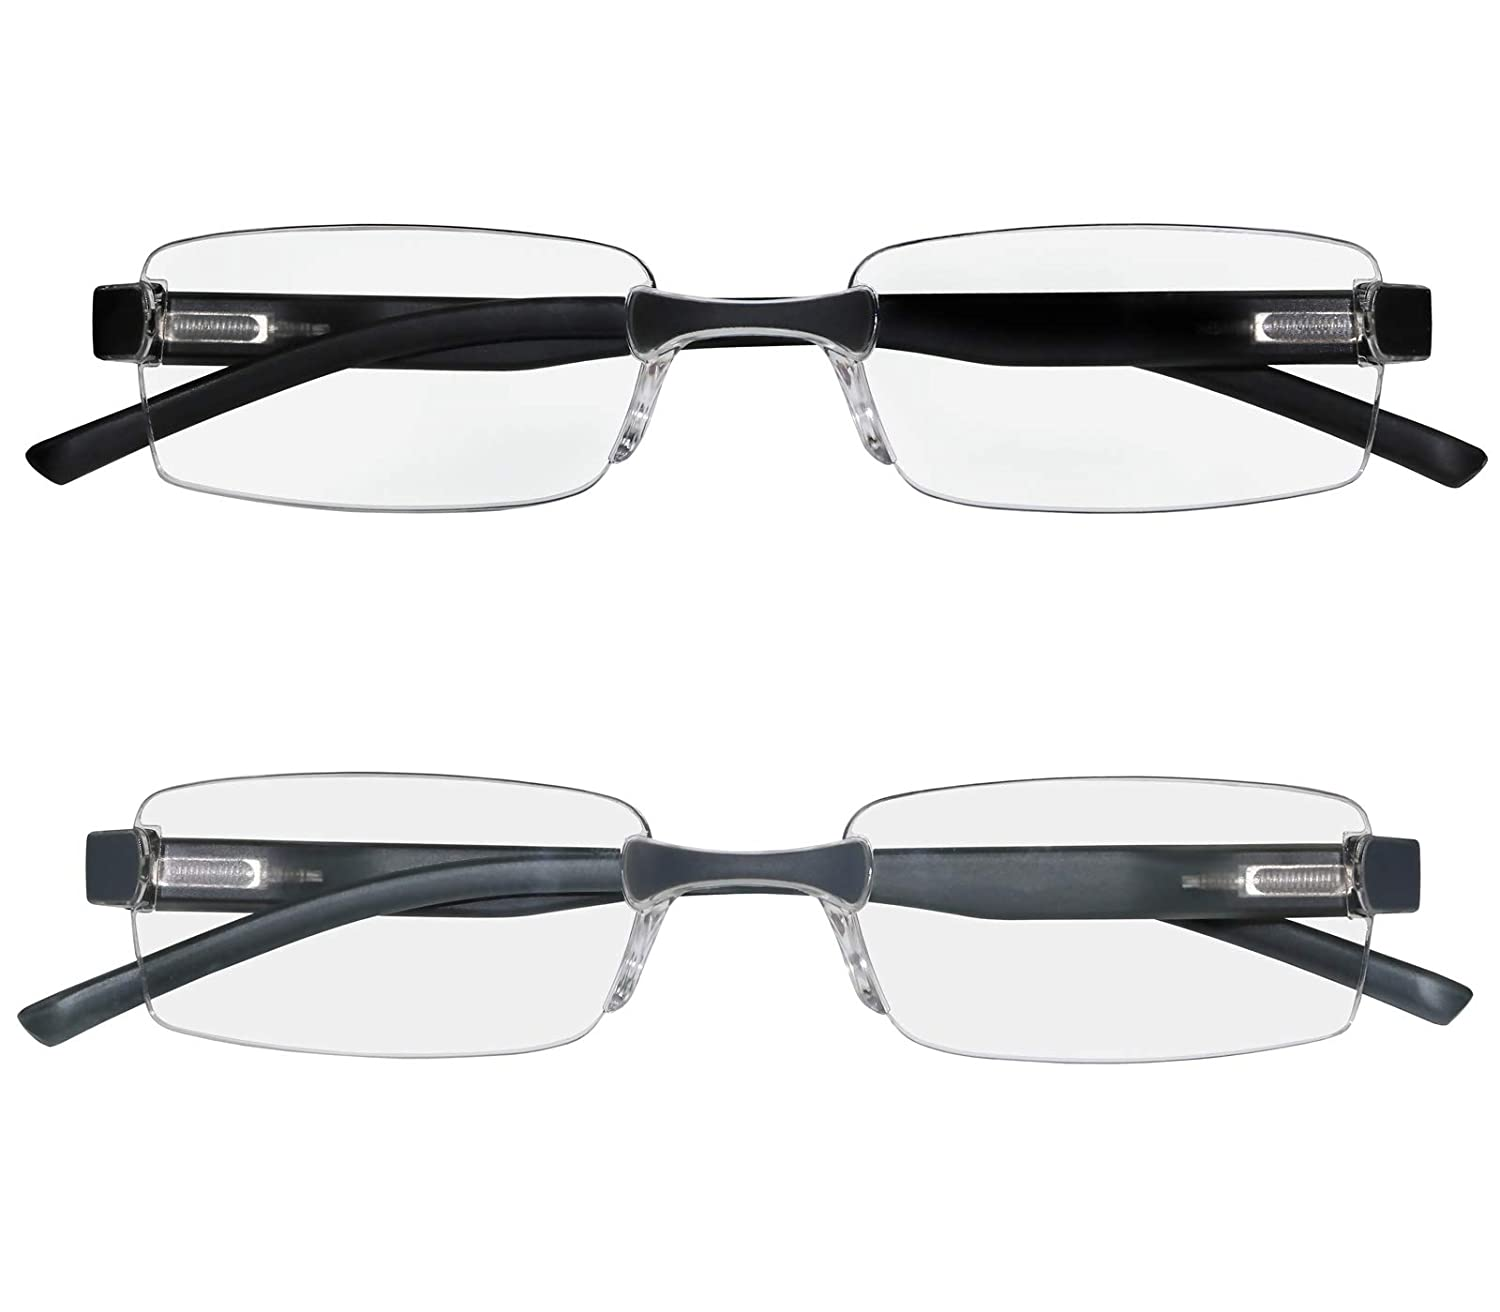 b18eea187a Amazon.com  Reading Glasses Set of 2 Rimless Ultra Lightweight Comfort  Glasses for Reading for Men and Women +1  Clothing